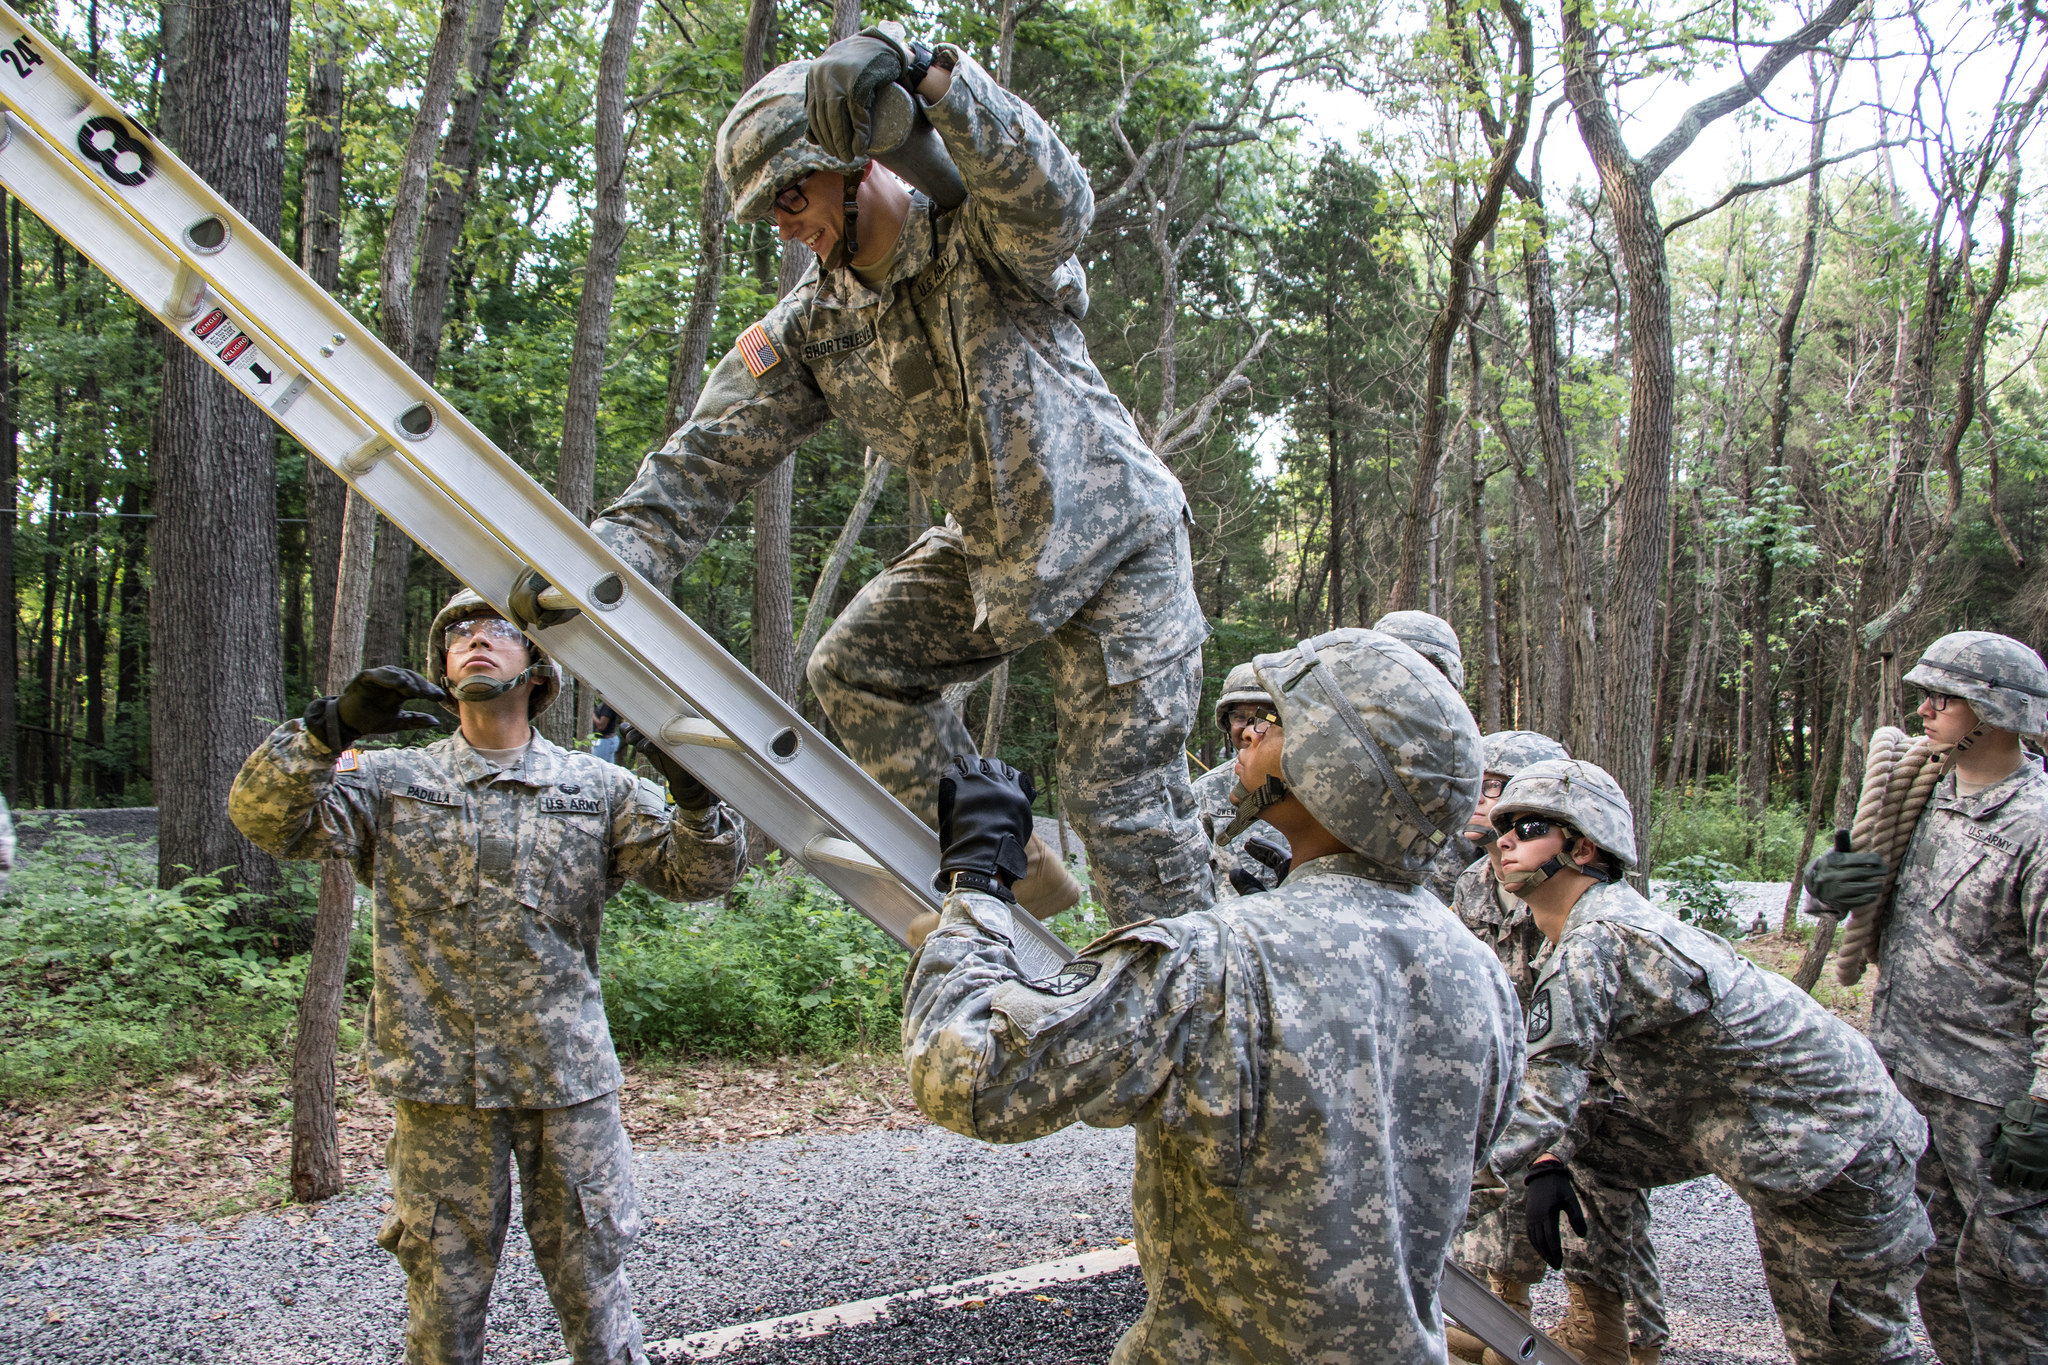 Cadets learn strengths and weaknesses